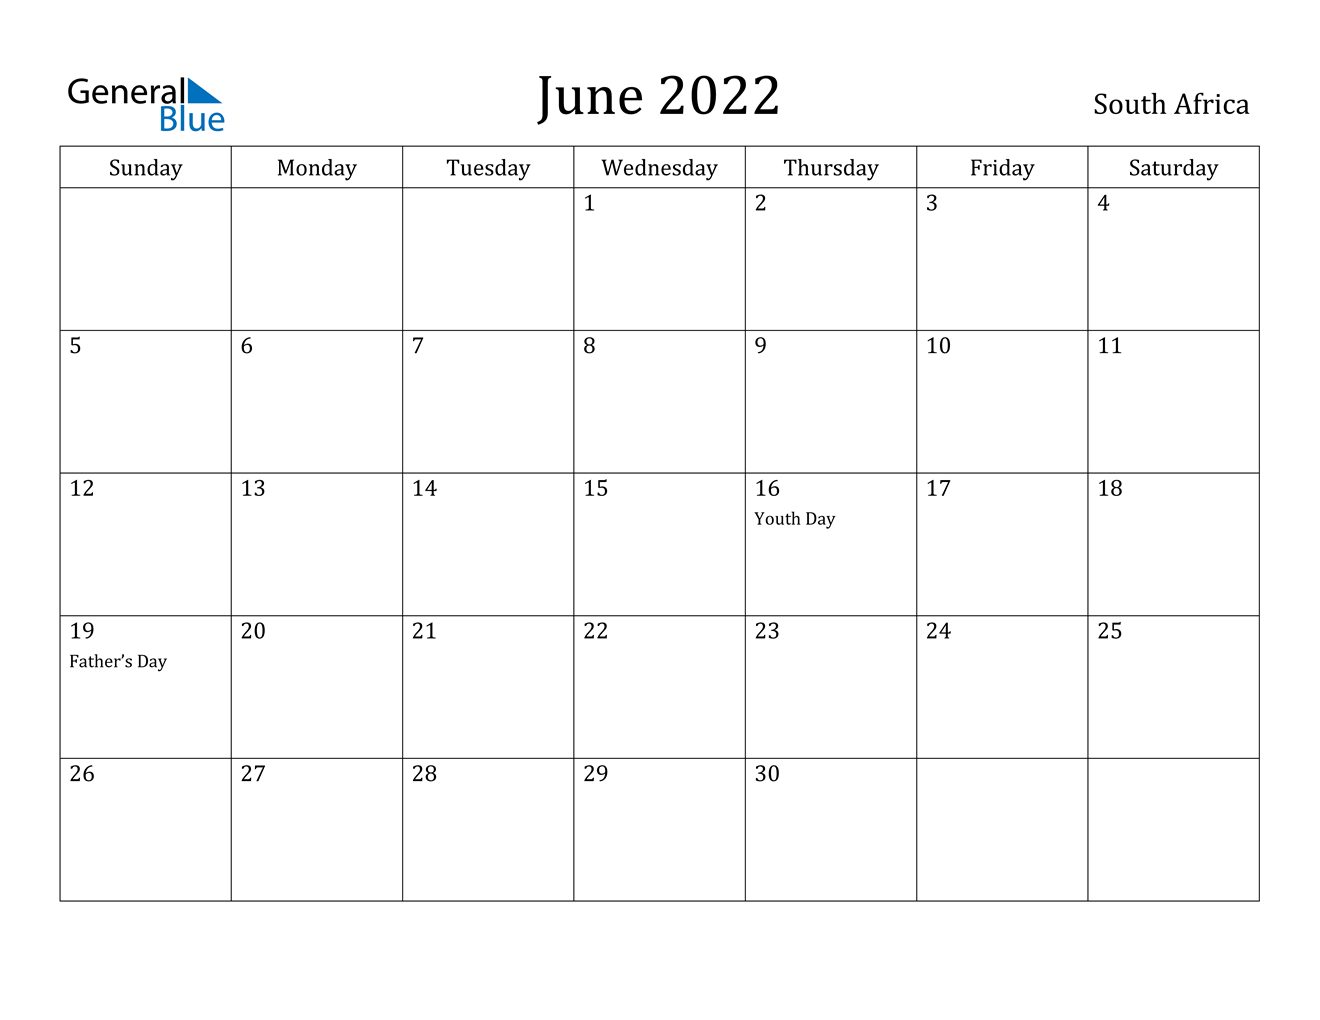 June 2022 Calendar With Holidays.South Africa June 2022 Calendar With Holidays